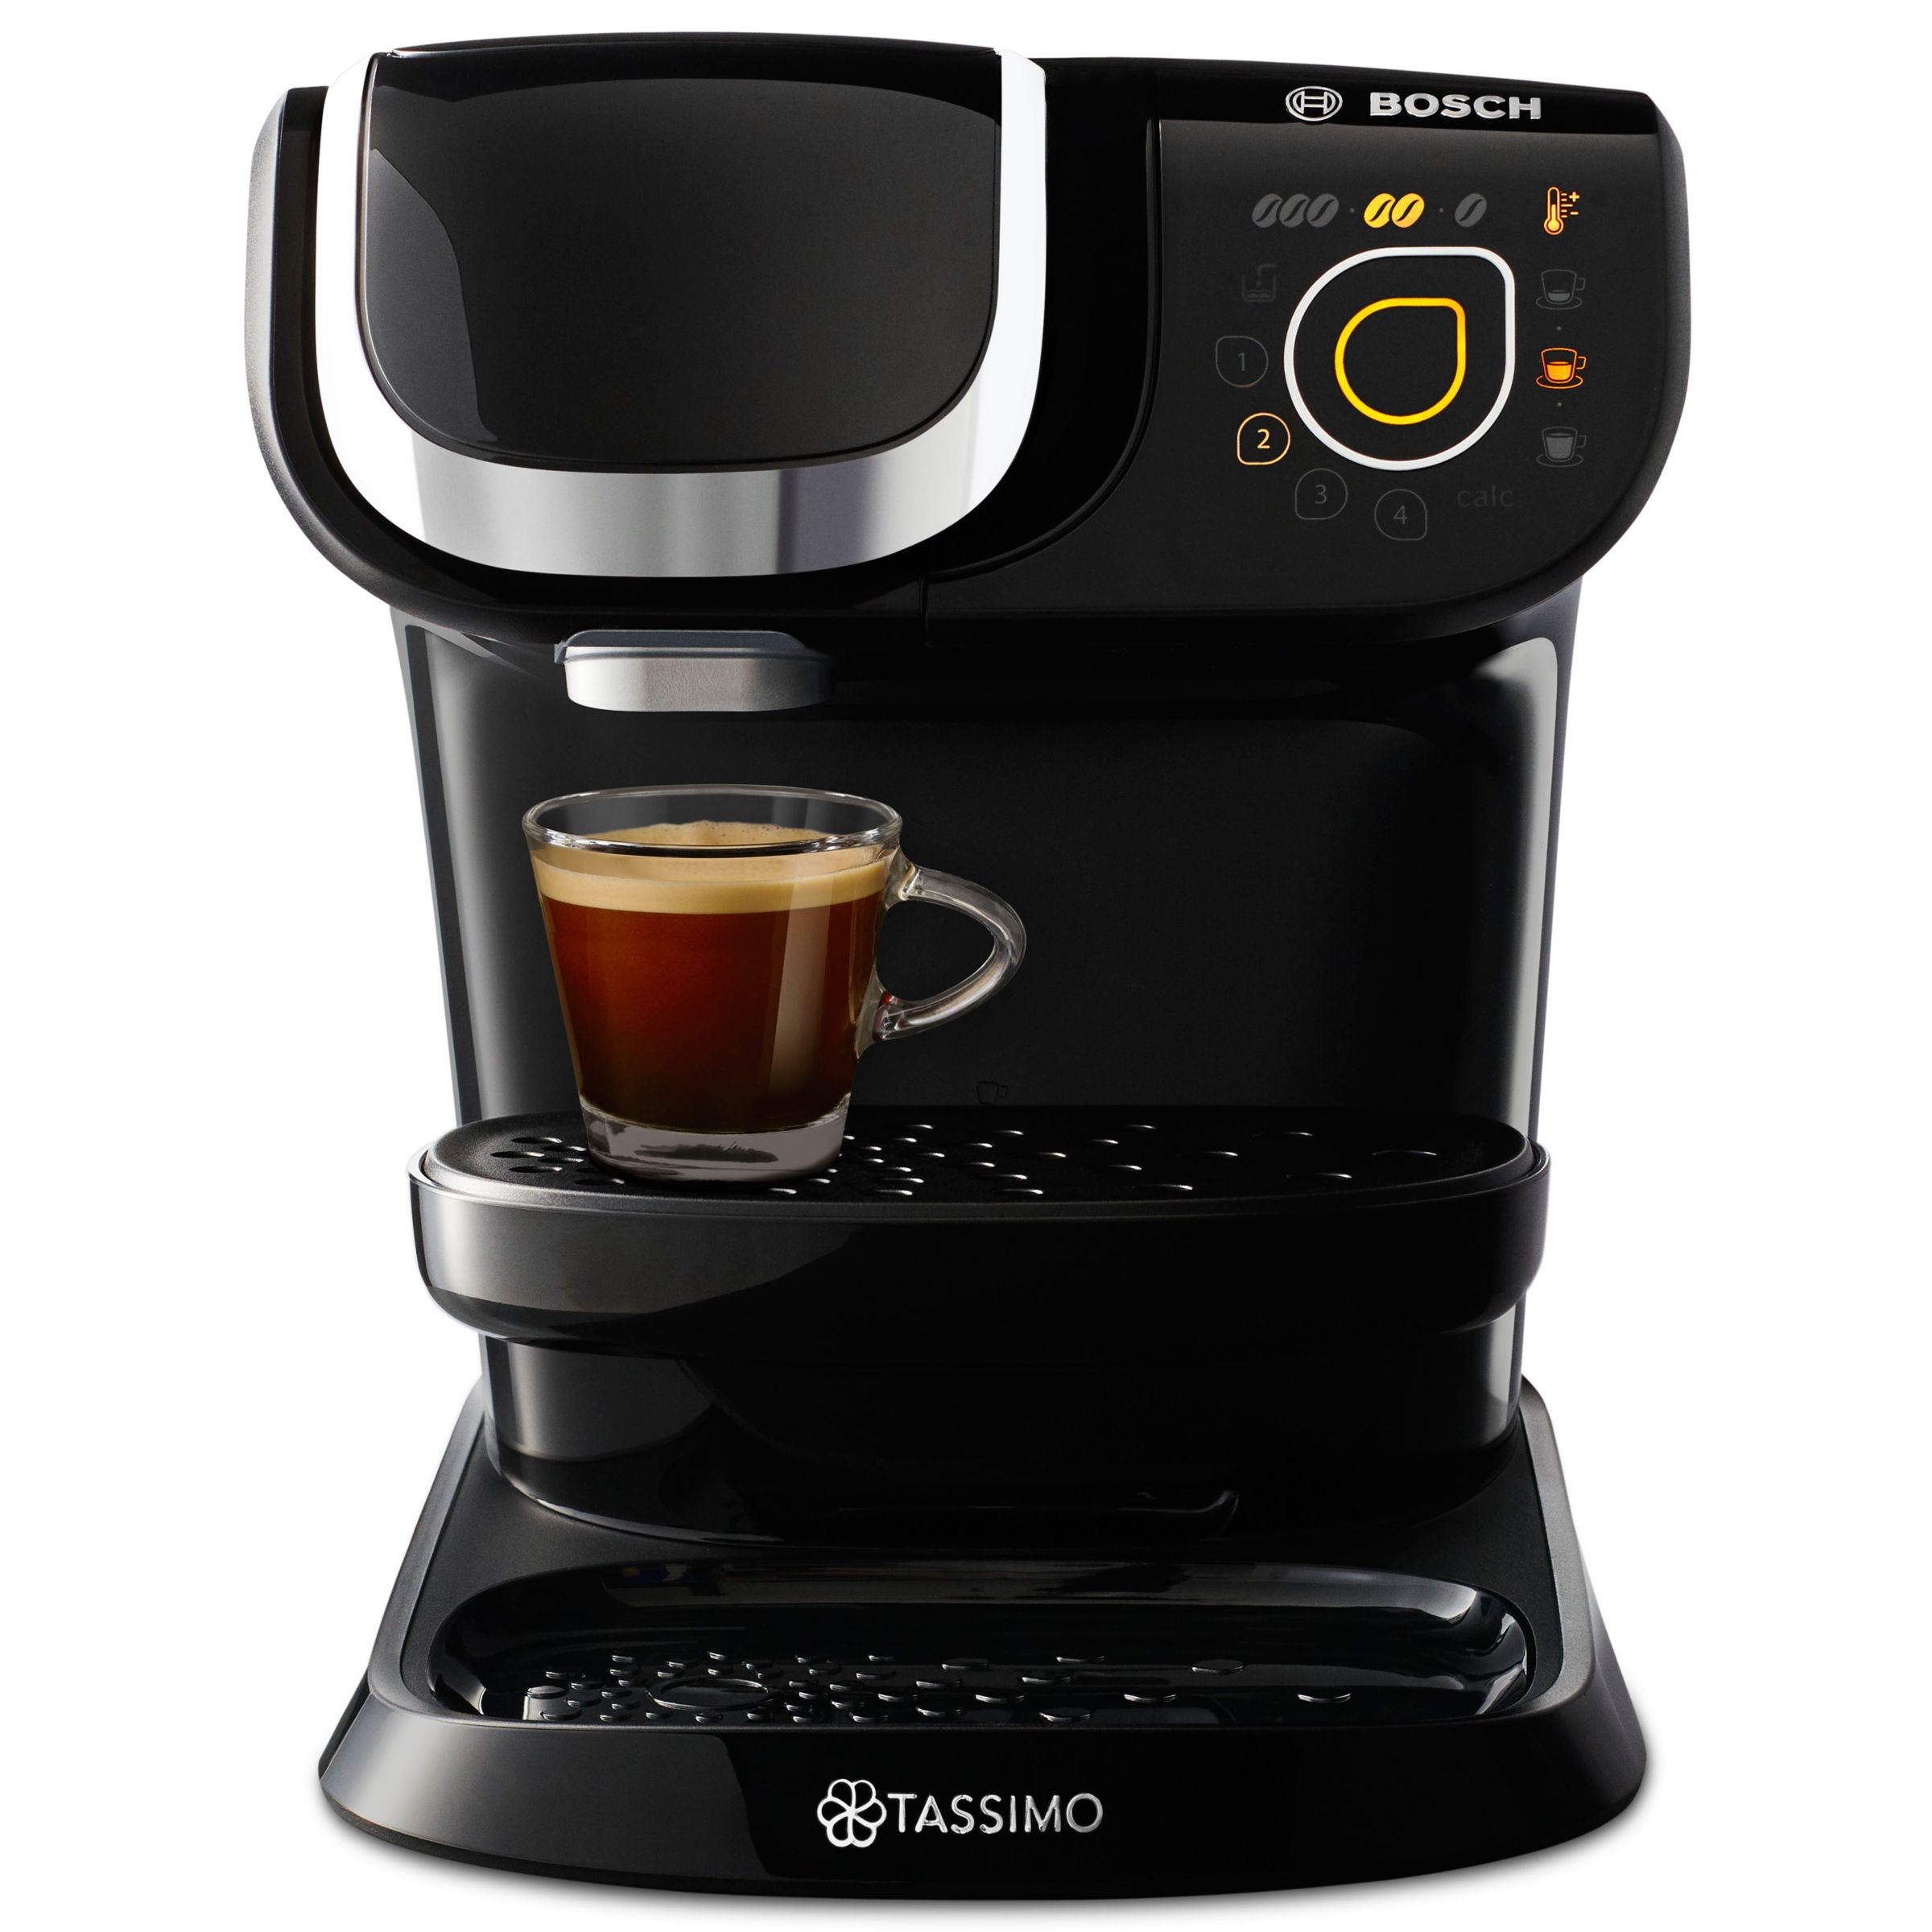 John Lewis Bosch Tassimo Coffee Maker : Buy Tassimo My Way Coffee Machine by Bosch John Lewis